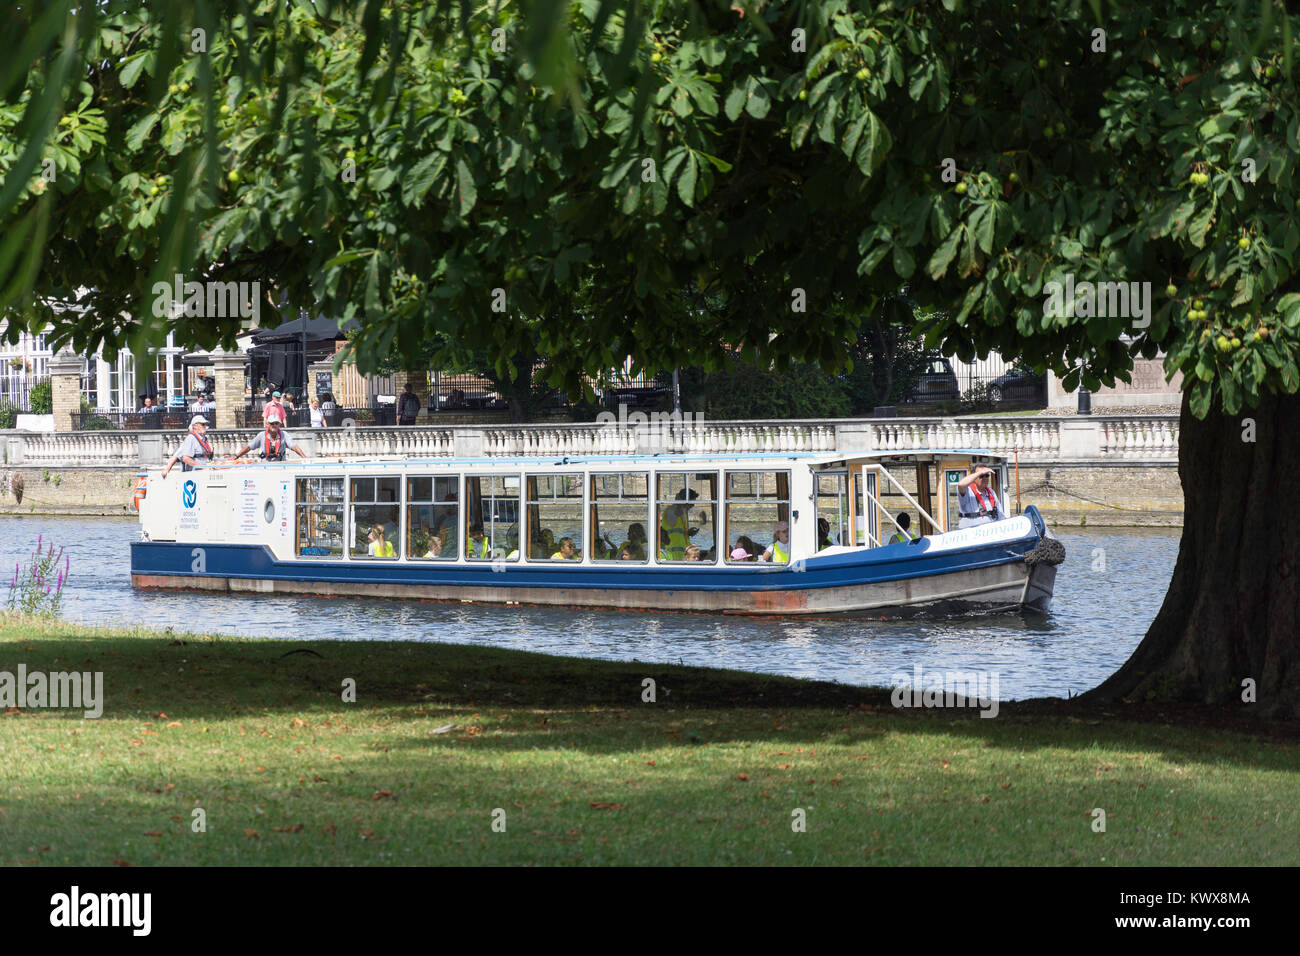 John Bunyan cruise boat on River Great Ouse, Bedford, Bedfordshire, England, United Kingdom - Stock Image